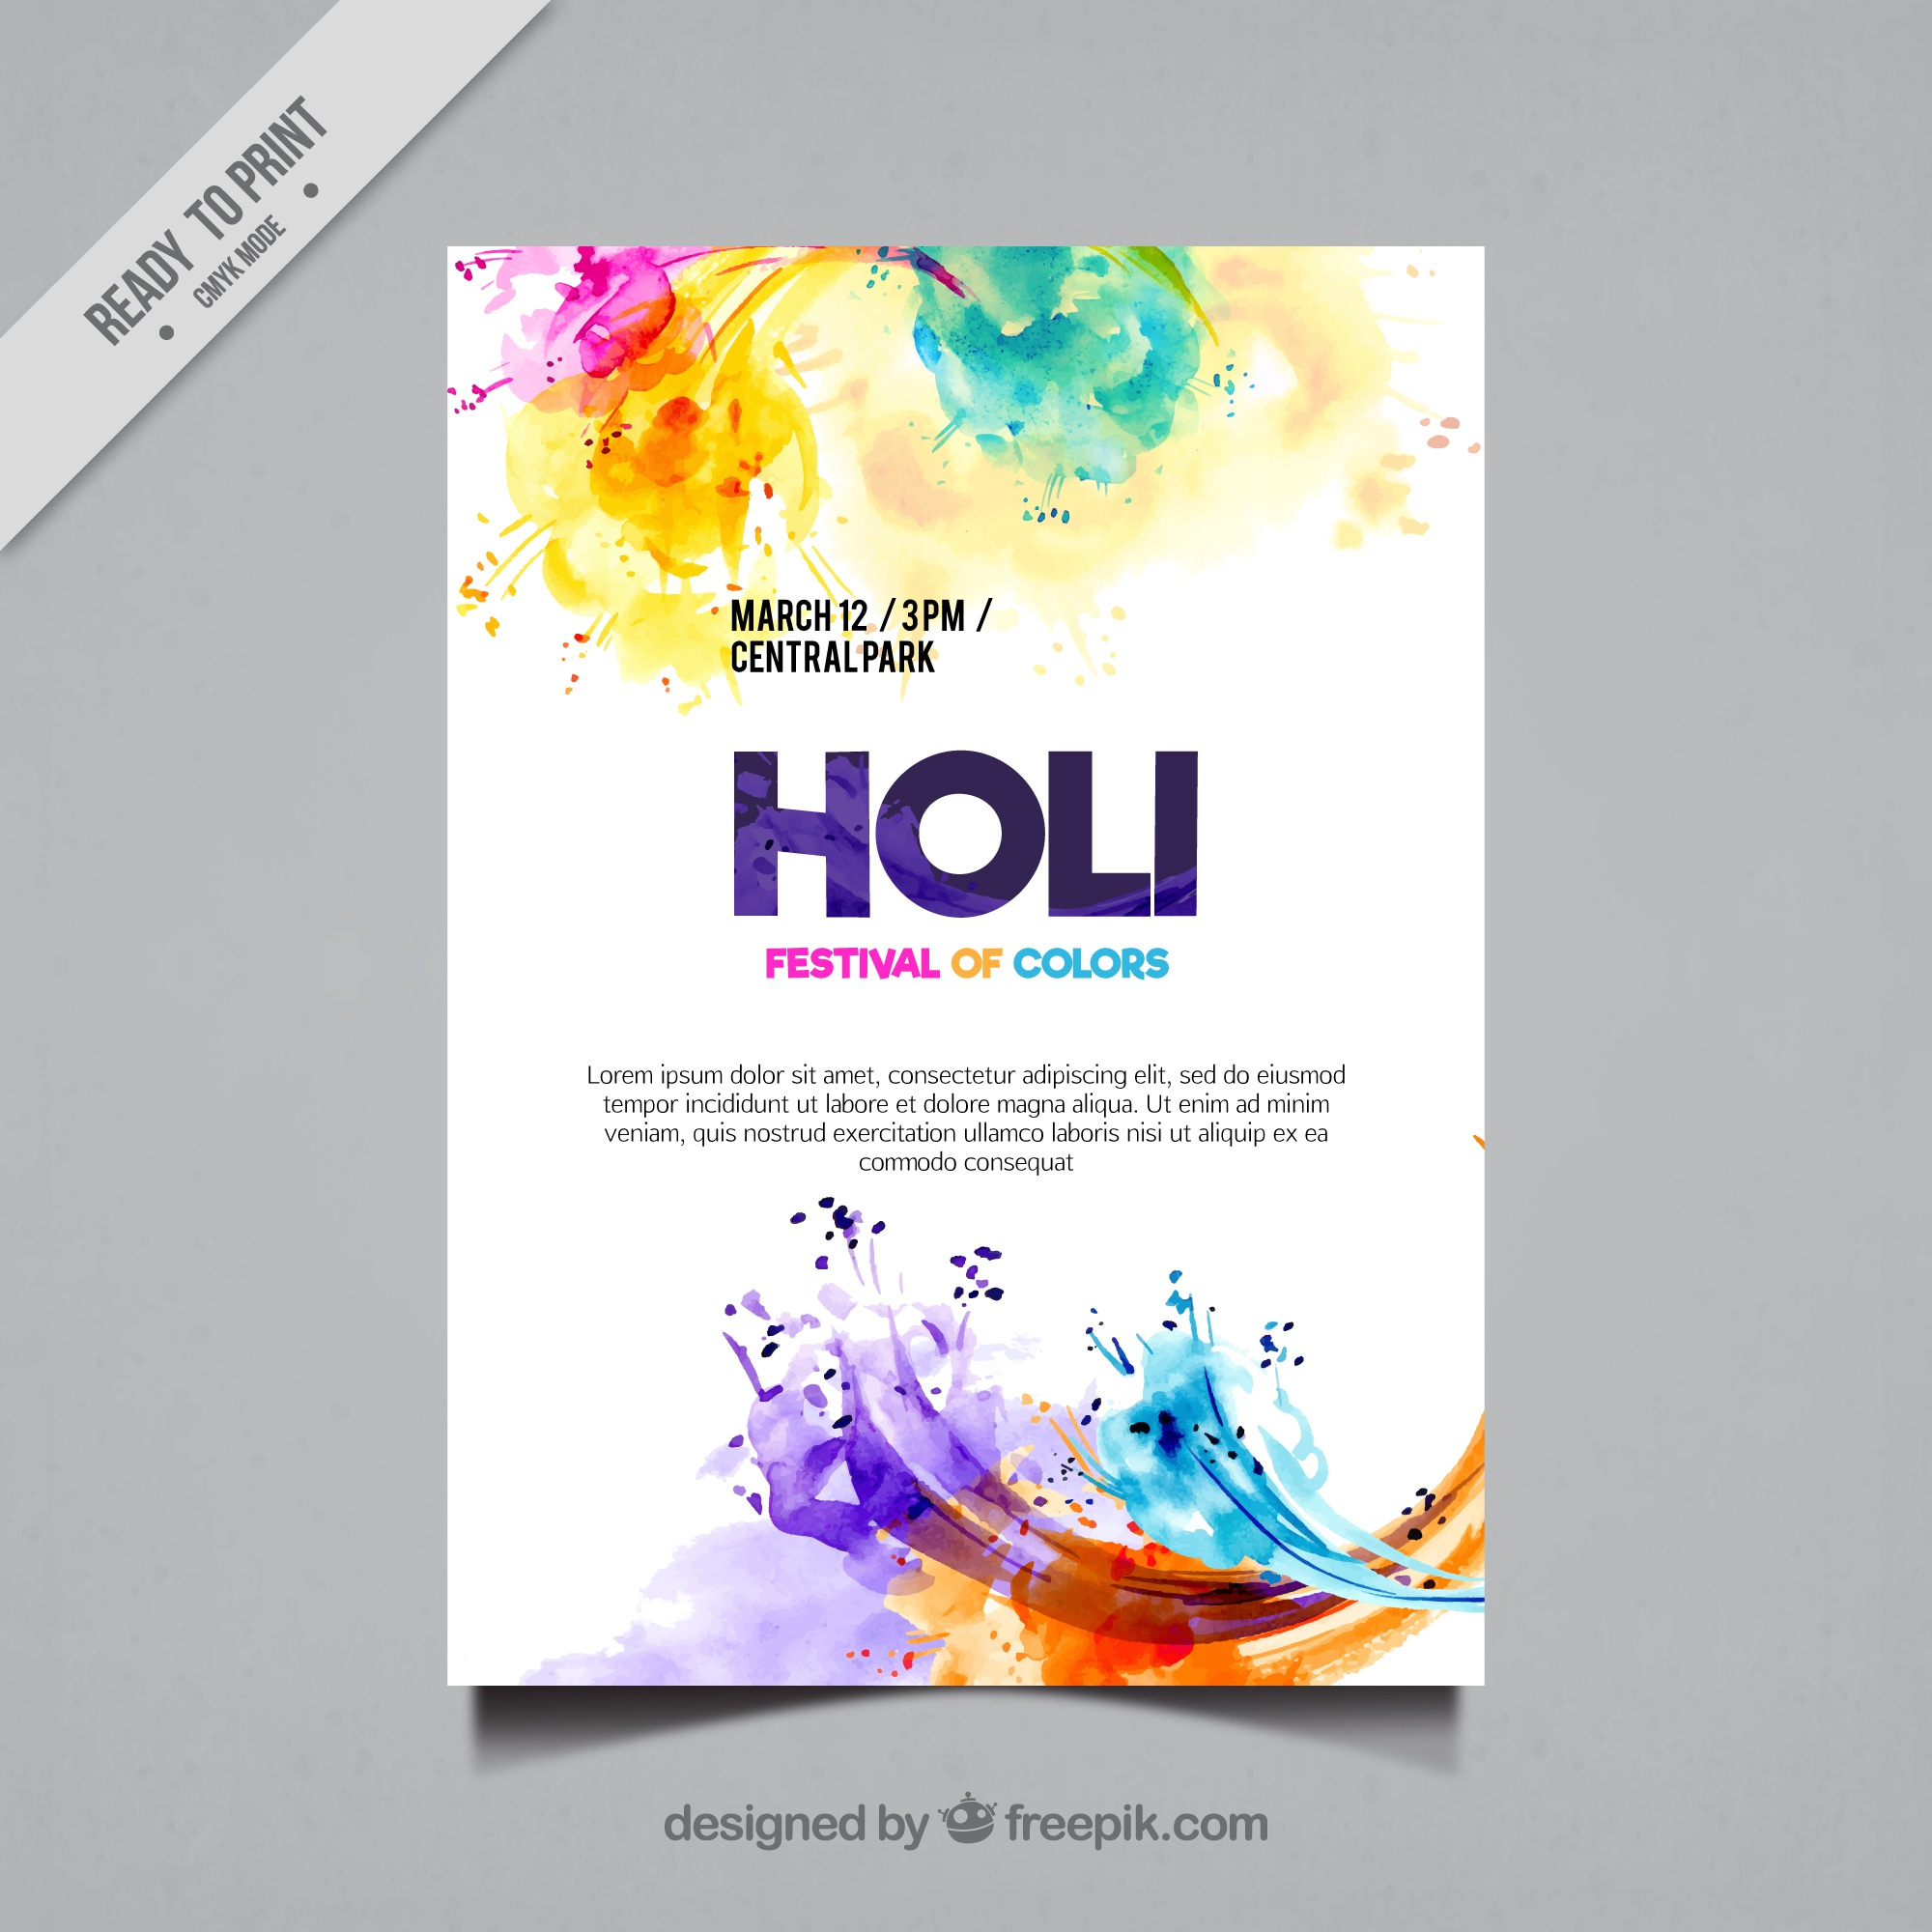 Colored watercolor stains holi flyer